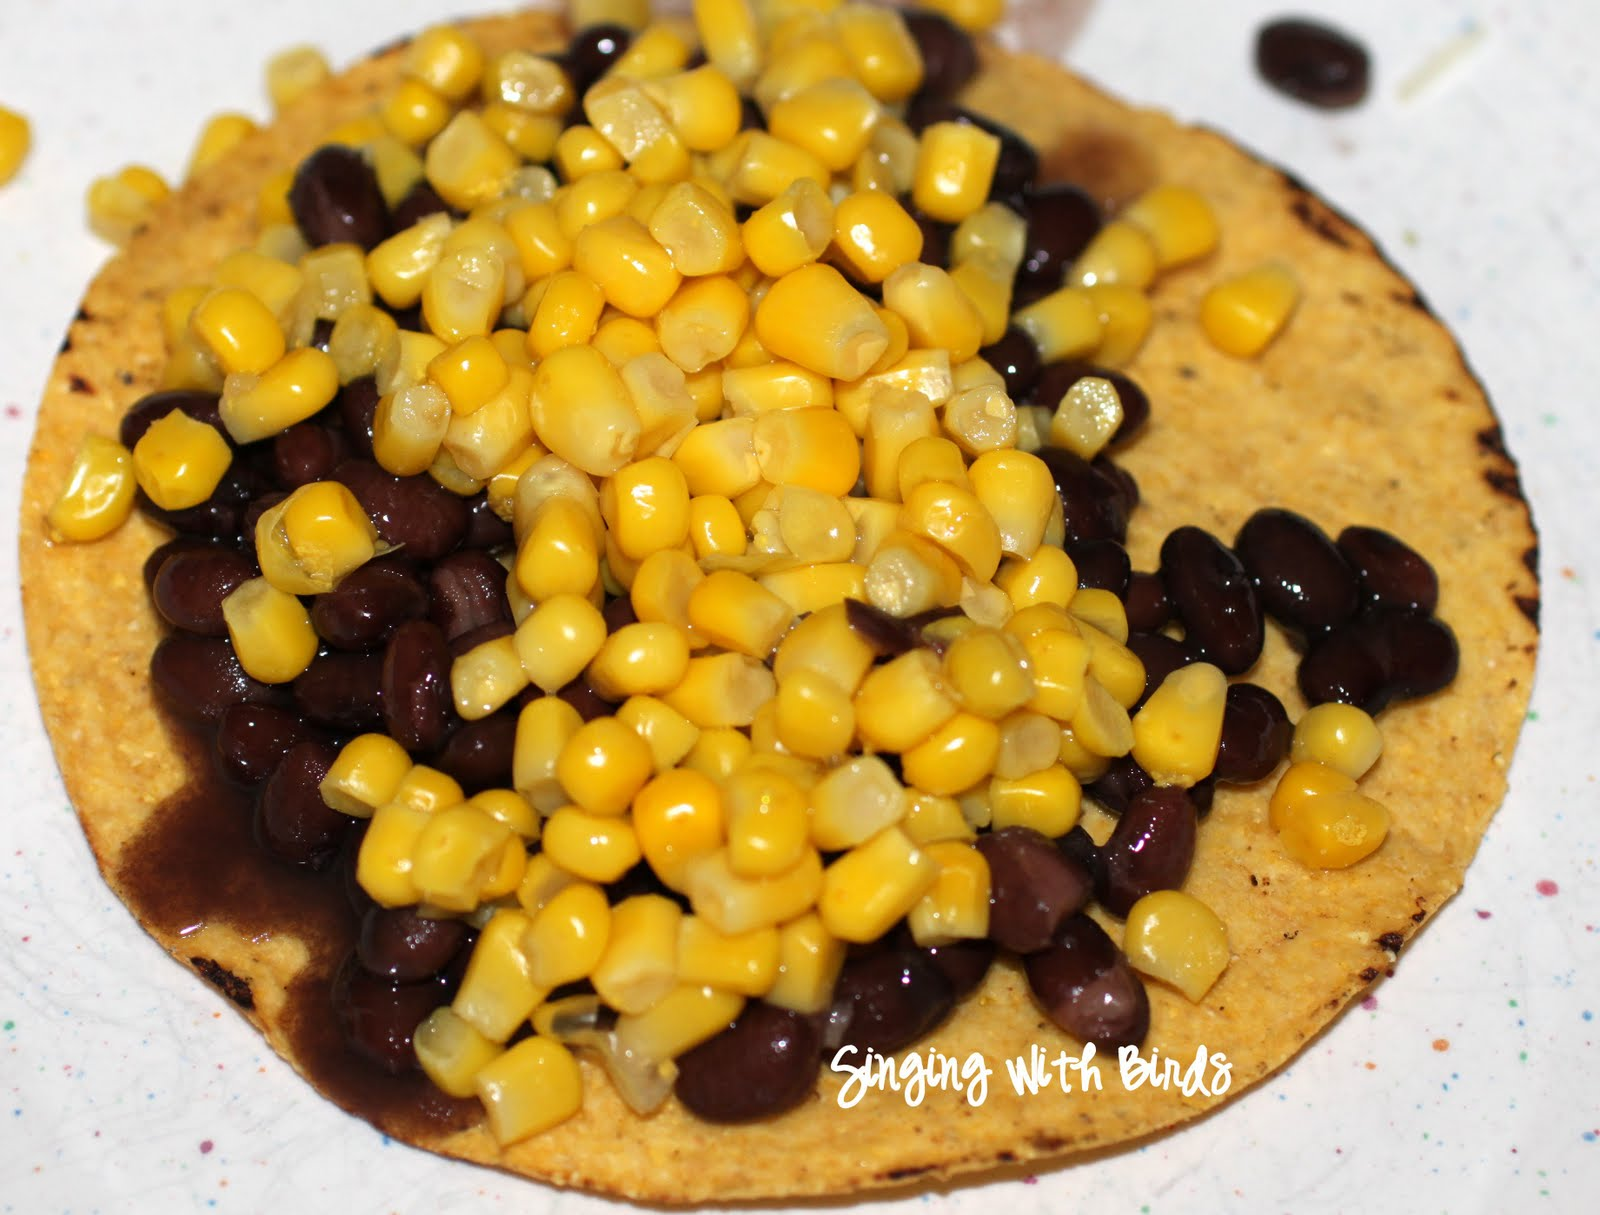 ... on each plate. Add drained black beans, corn and shredded cheese